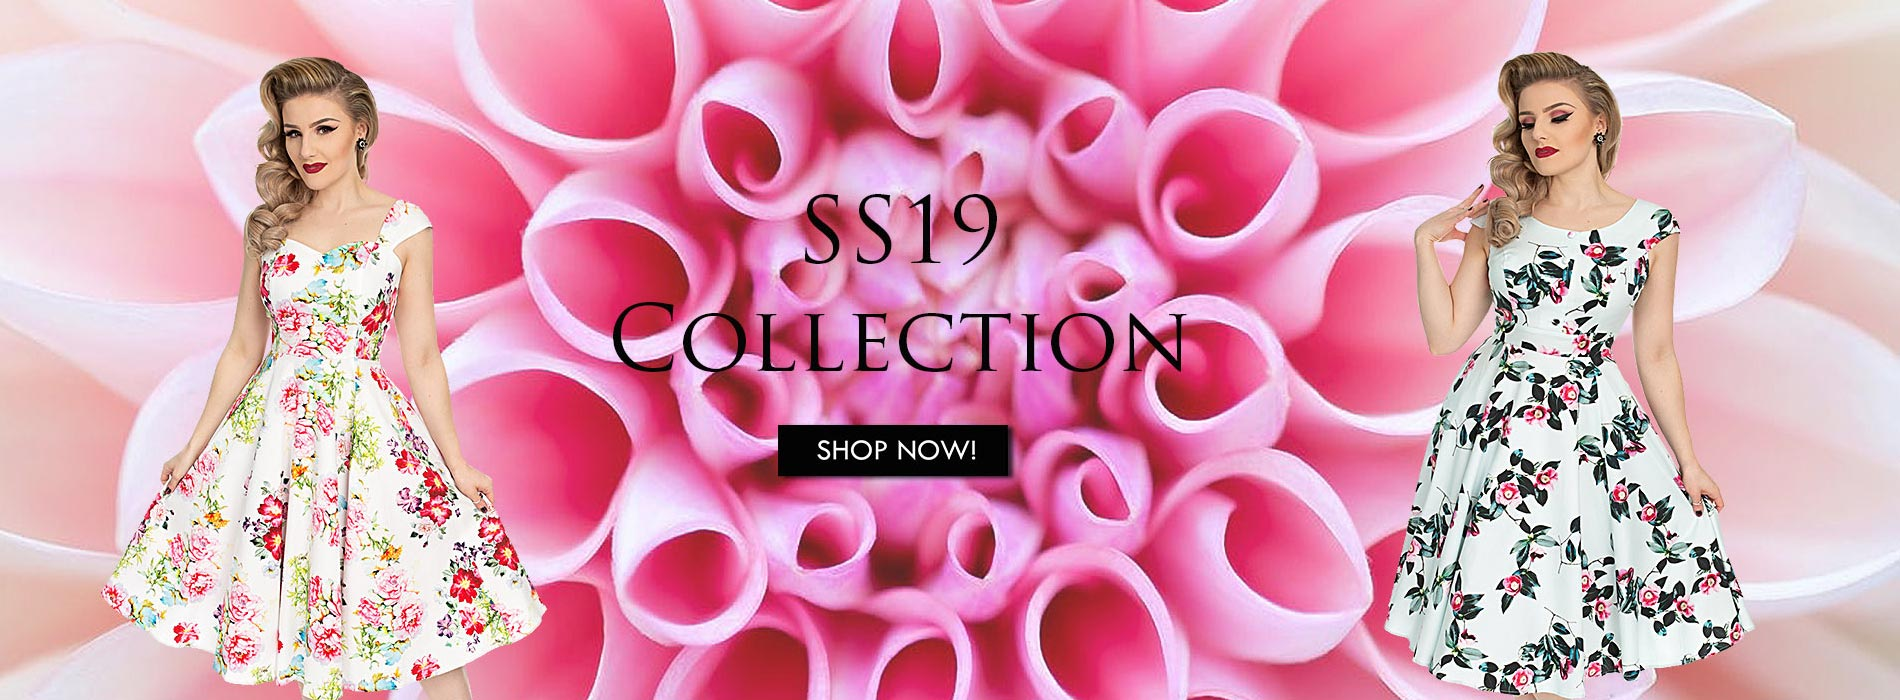 SS10 Collection